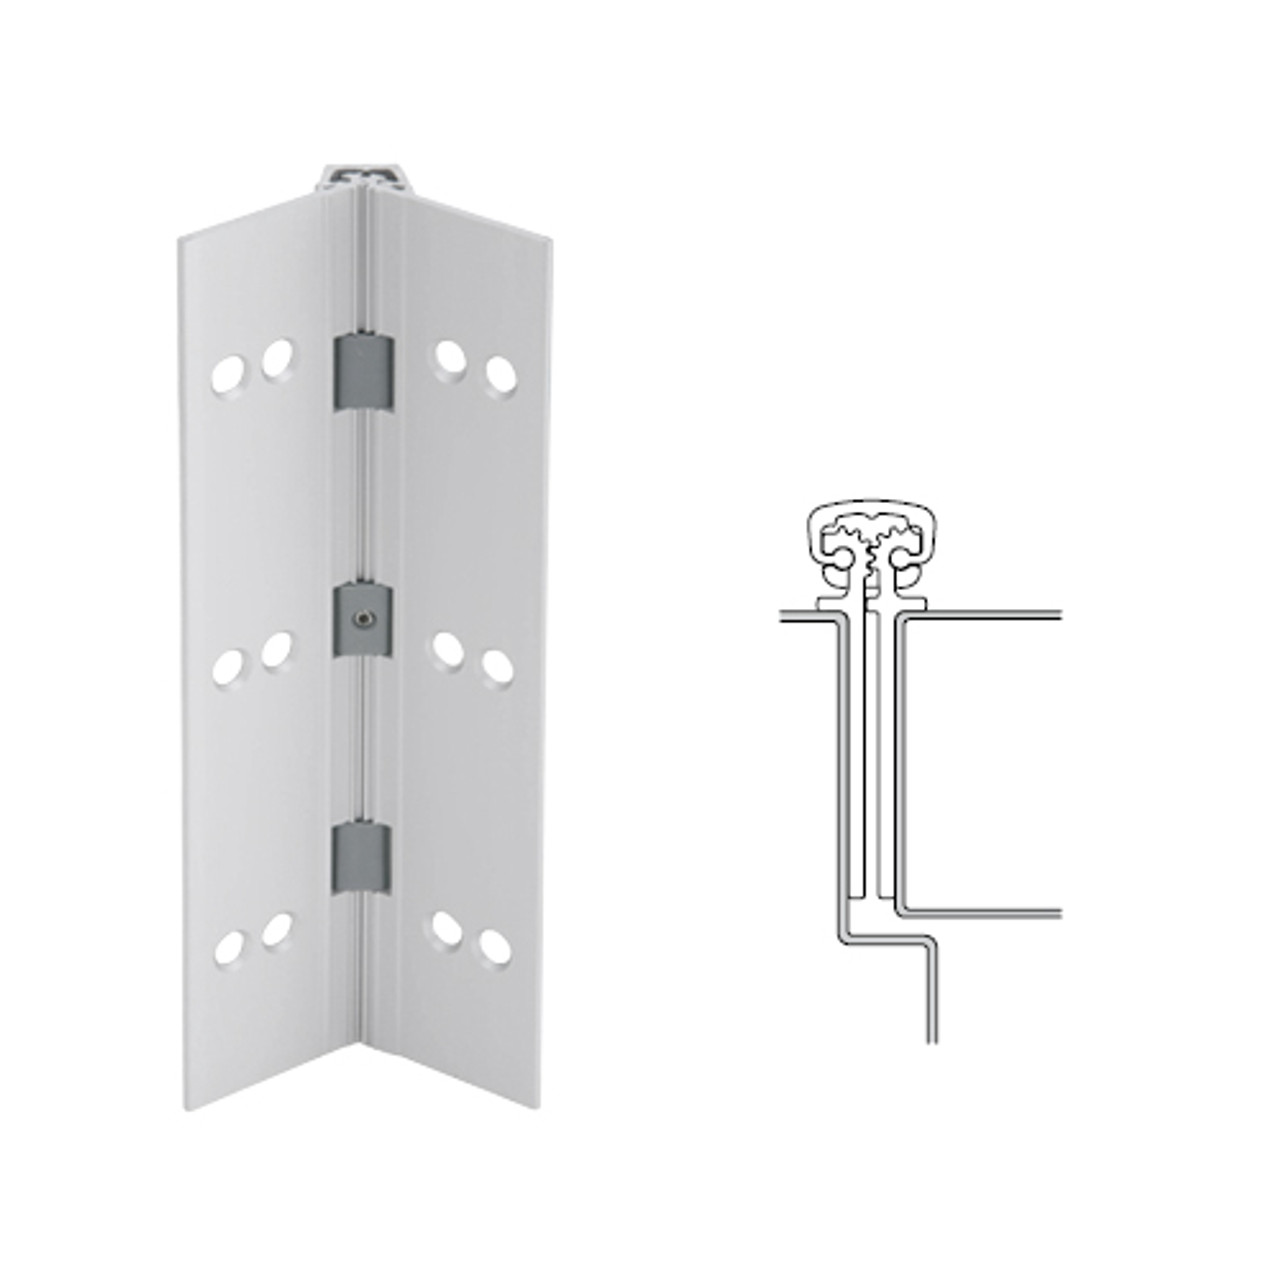 027XY-US28-83-EPT IVES Full Mortise Continuous Geared Hinges with Electrical Power Transfer Prep in Satin Aluminum